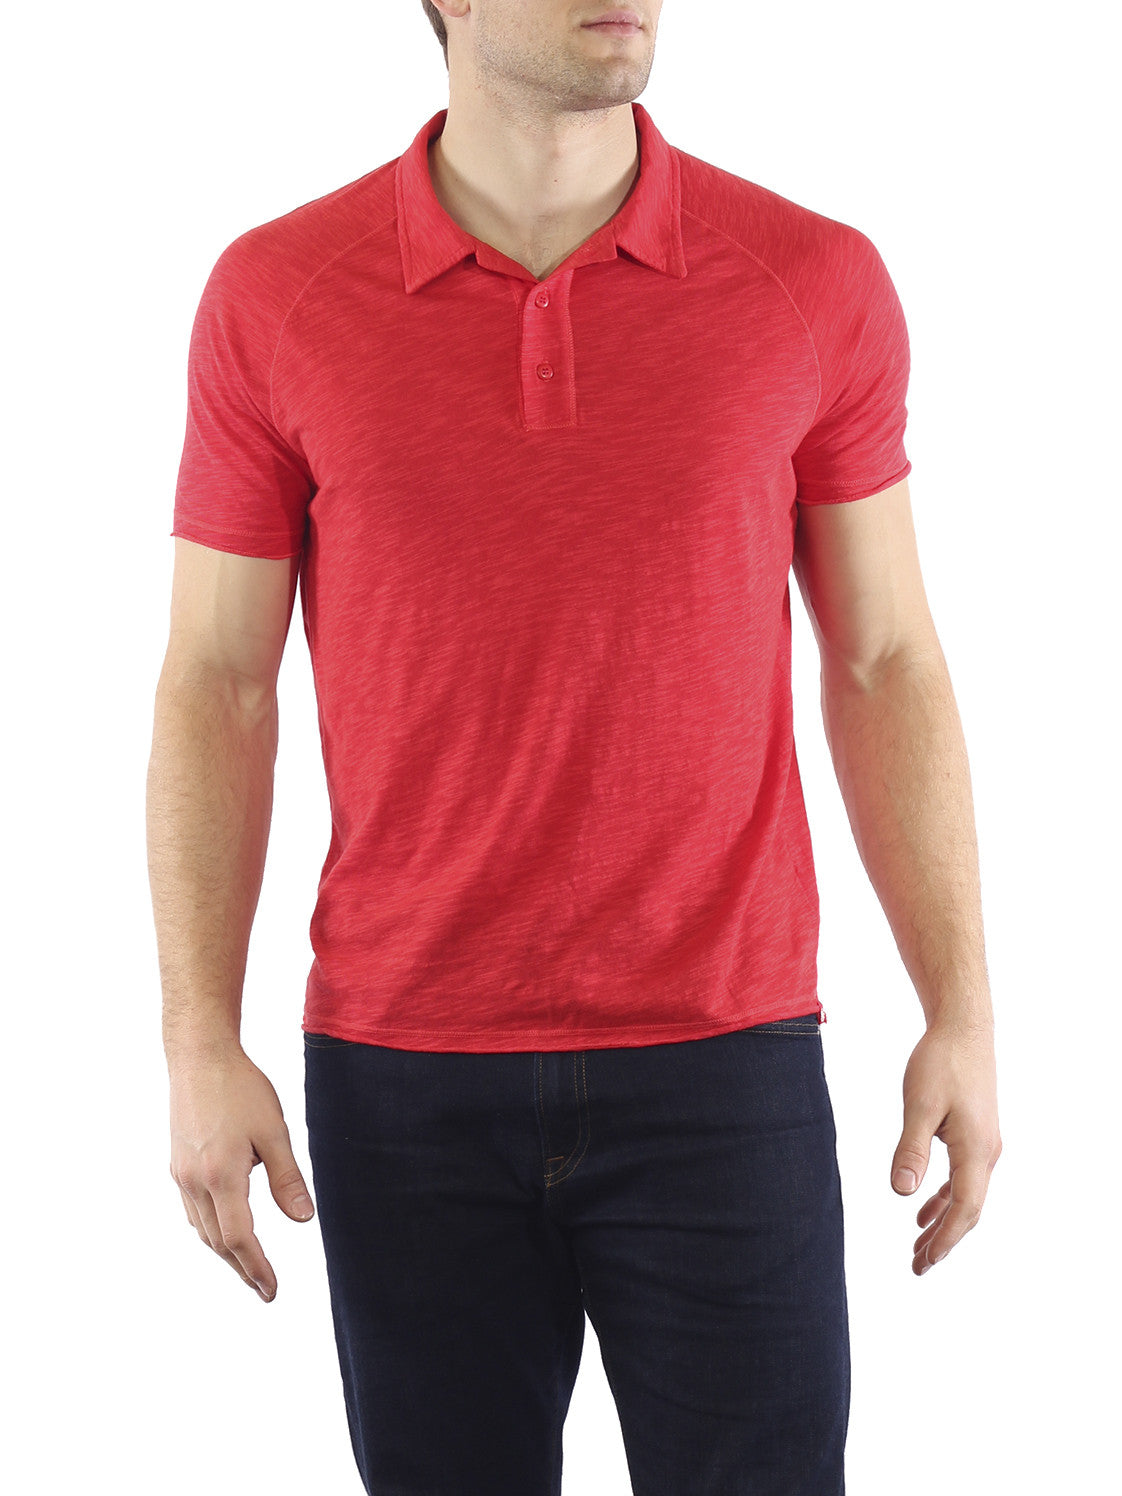 Agave Uluwatu Short Sleeve Polo K-1370, Rococco Red